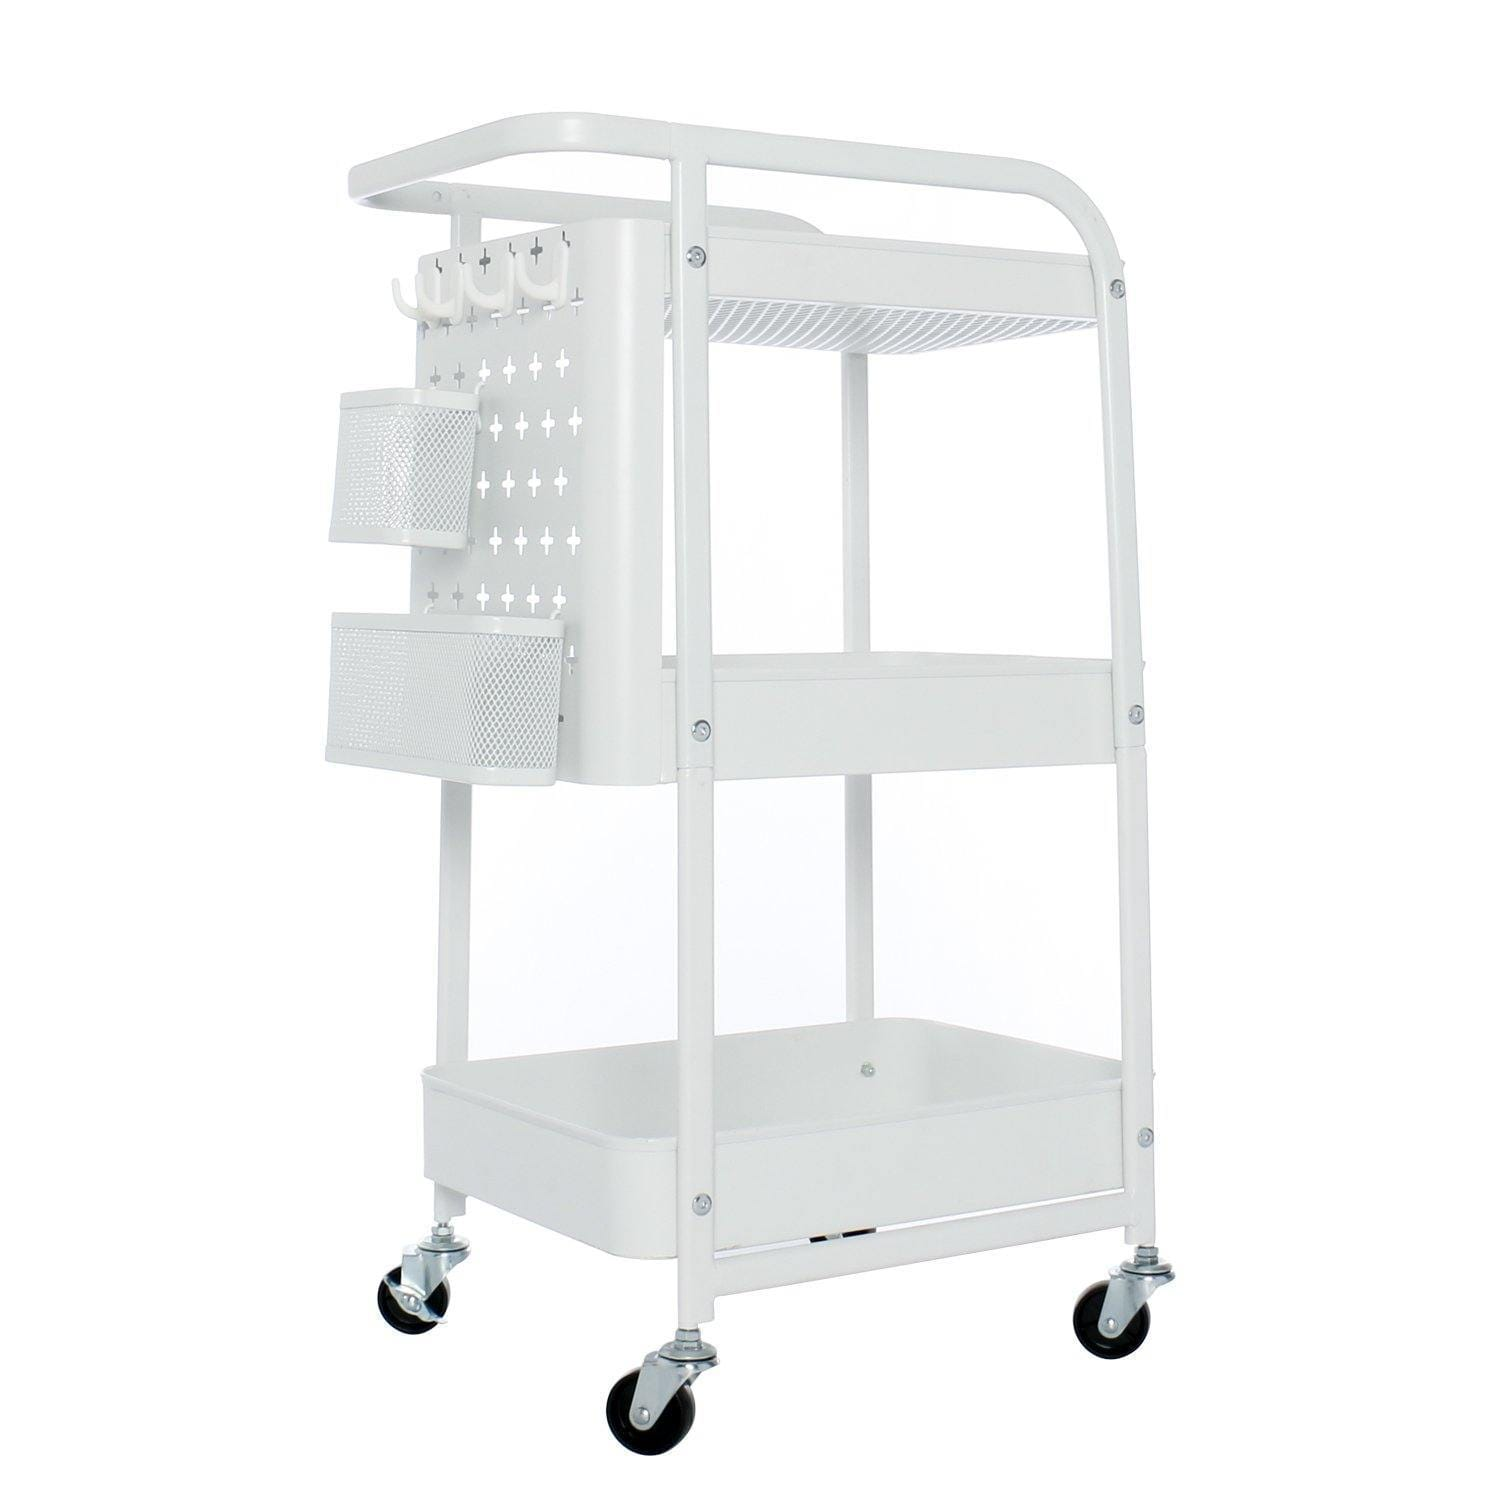 3 Tier Metal Storage Utility Cart